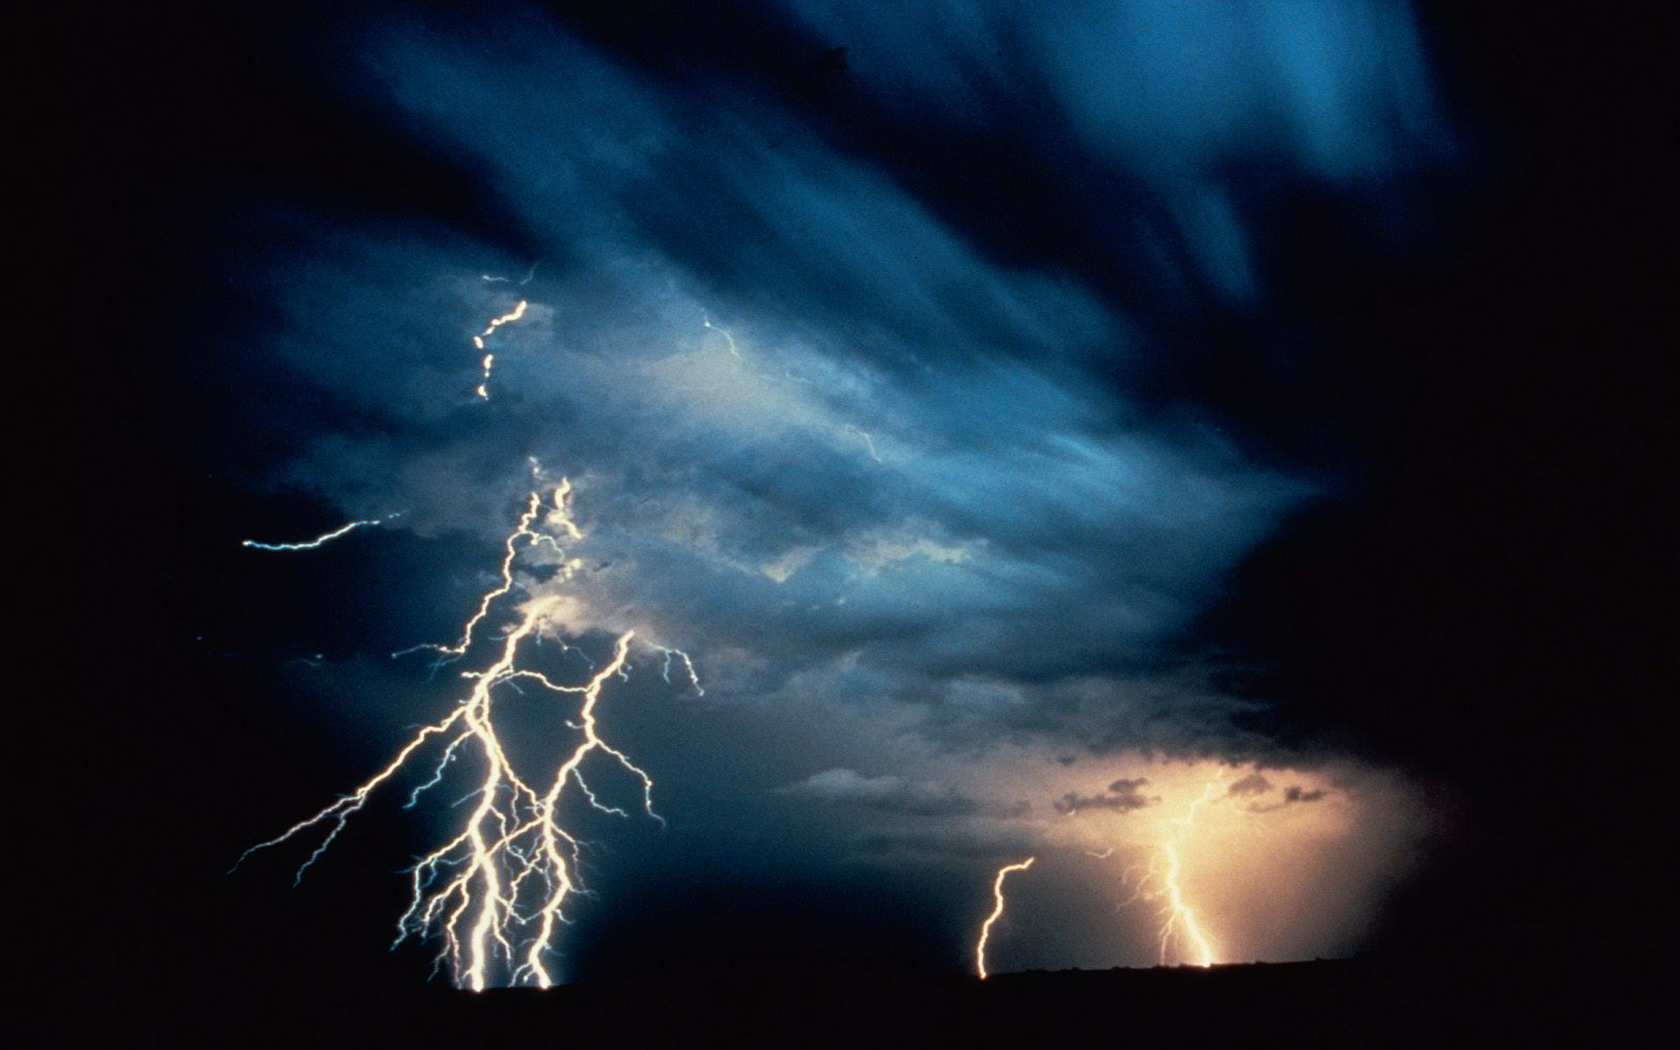 Desktop Wallpaper Gallery Computers Lightning thunderstorm 1680x1050